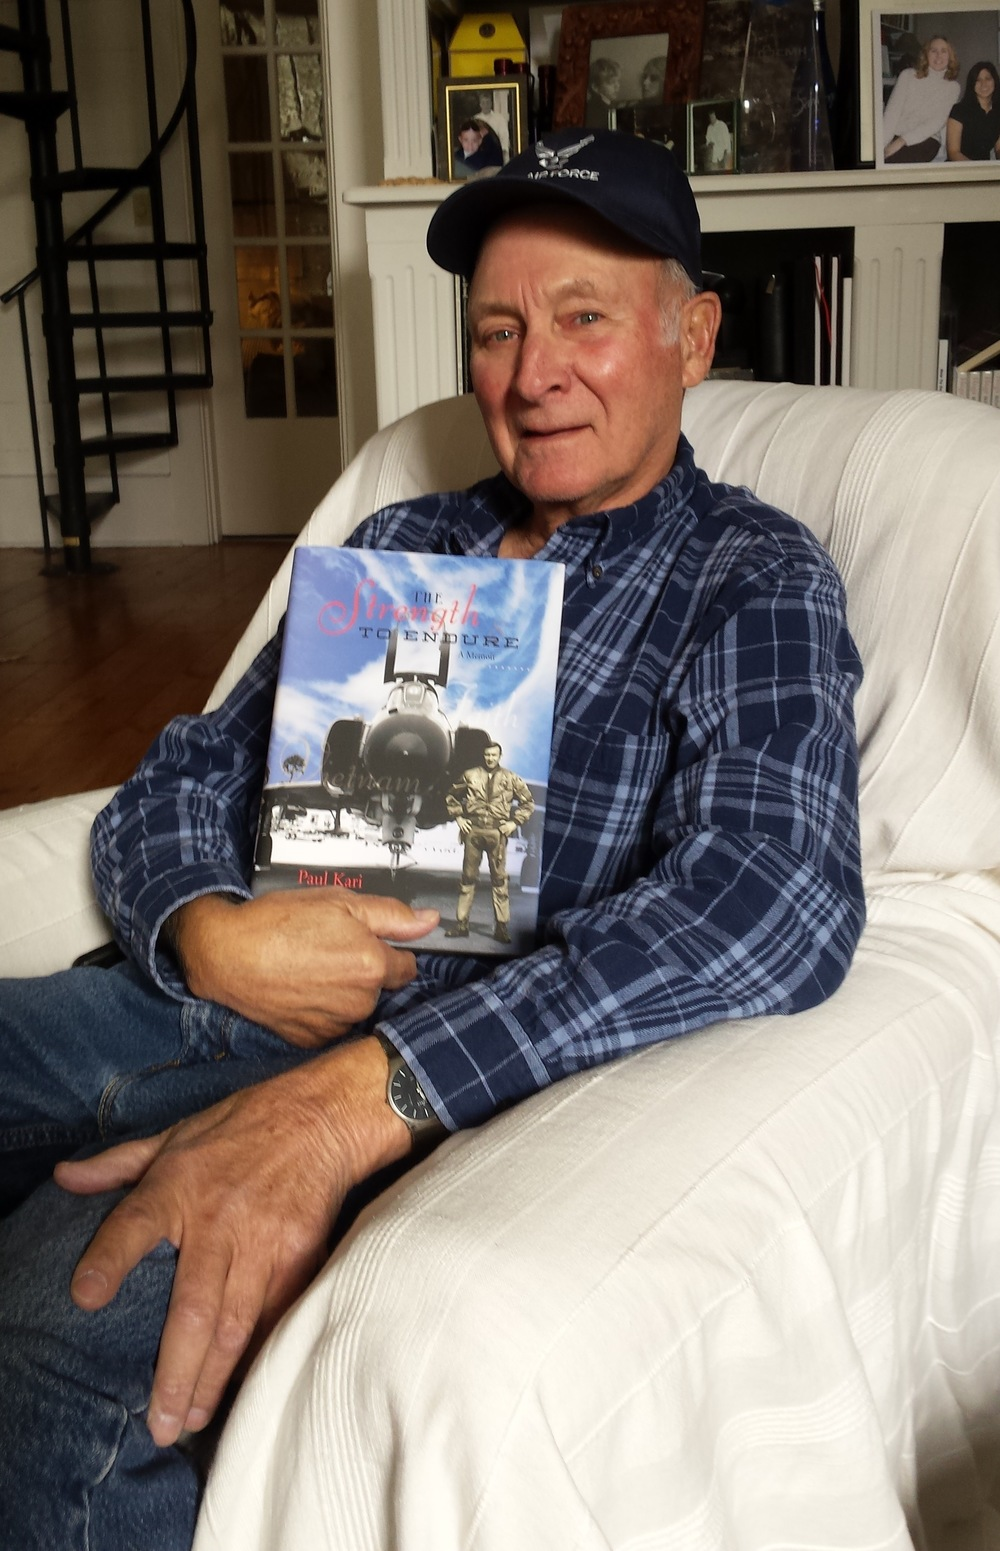 Paul Kari with his memoir, The Strength to Endure, a custom book published by Orange Frazer Press